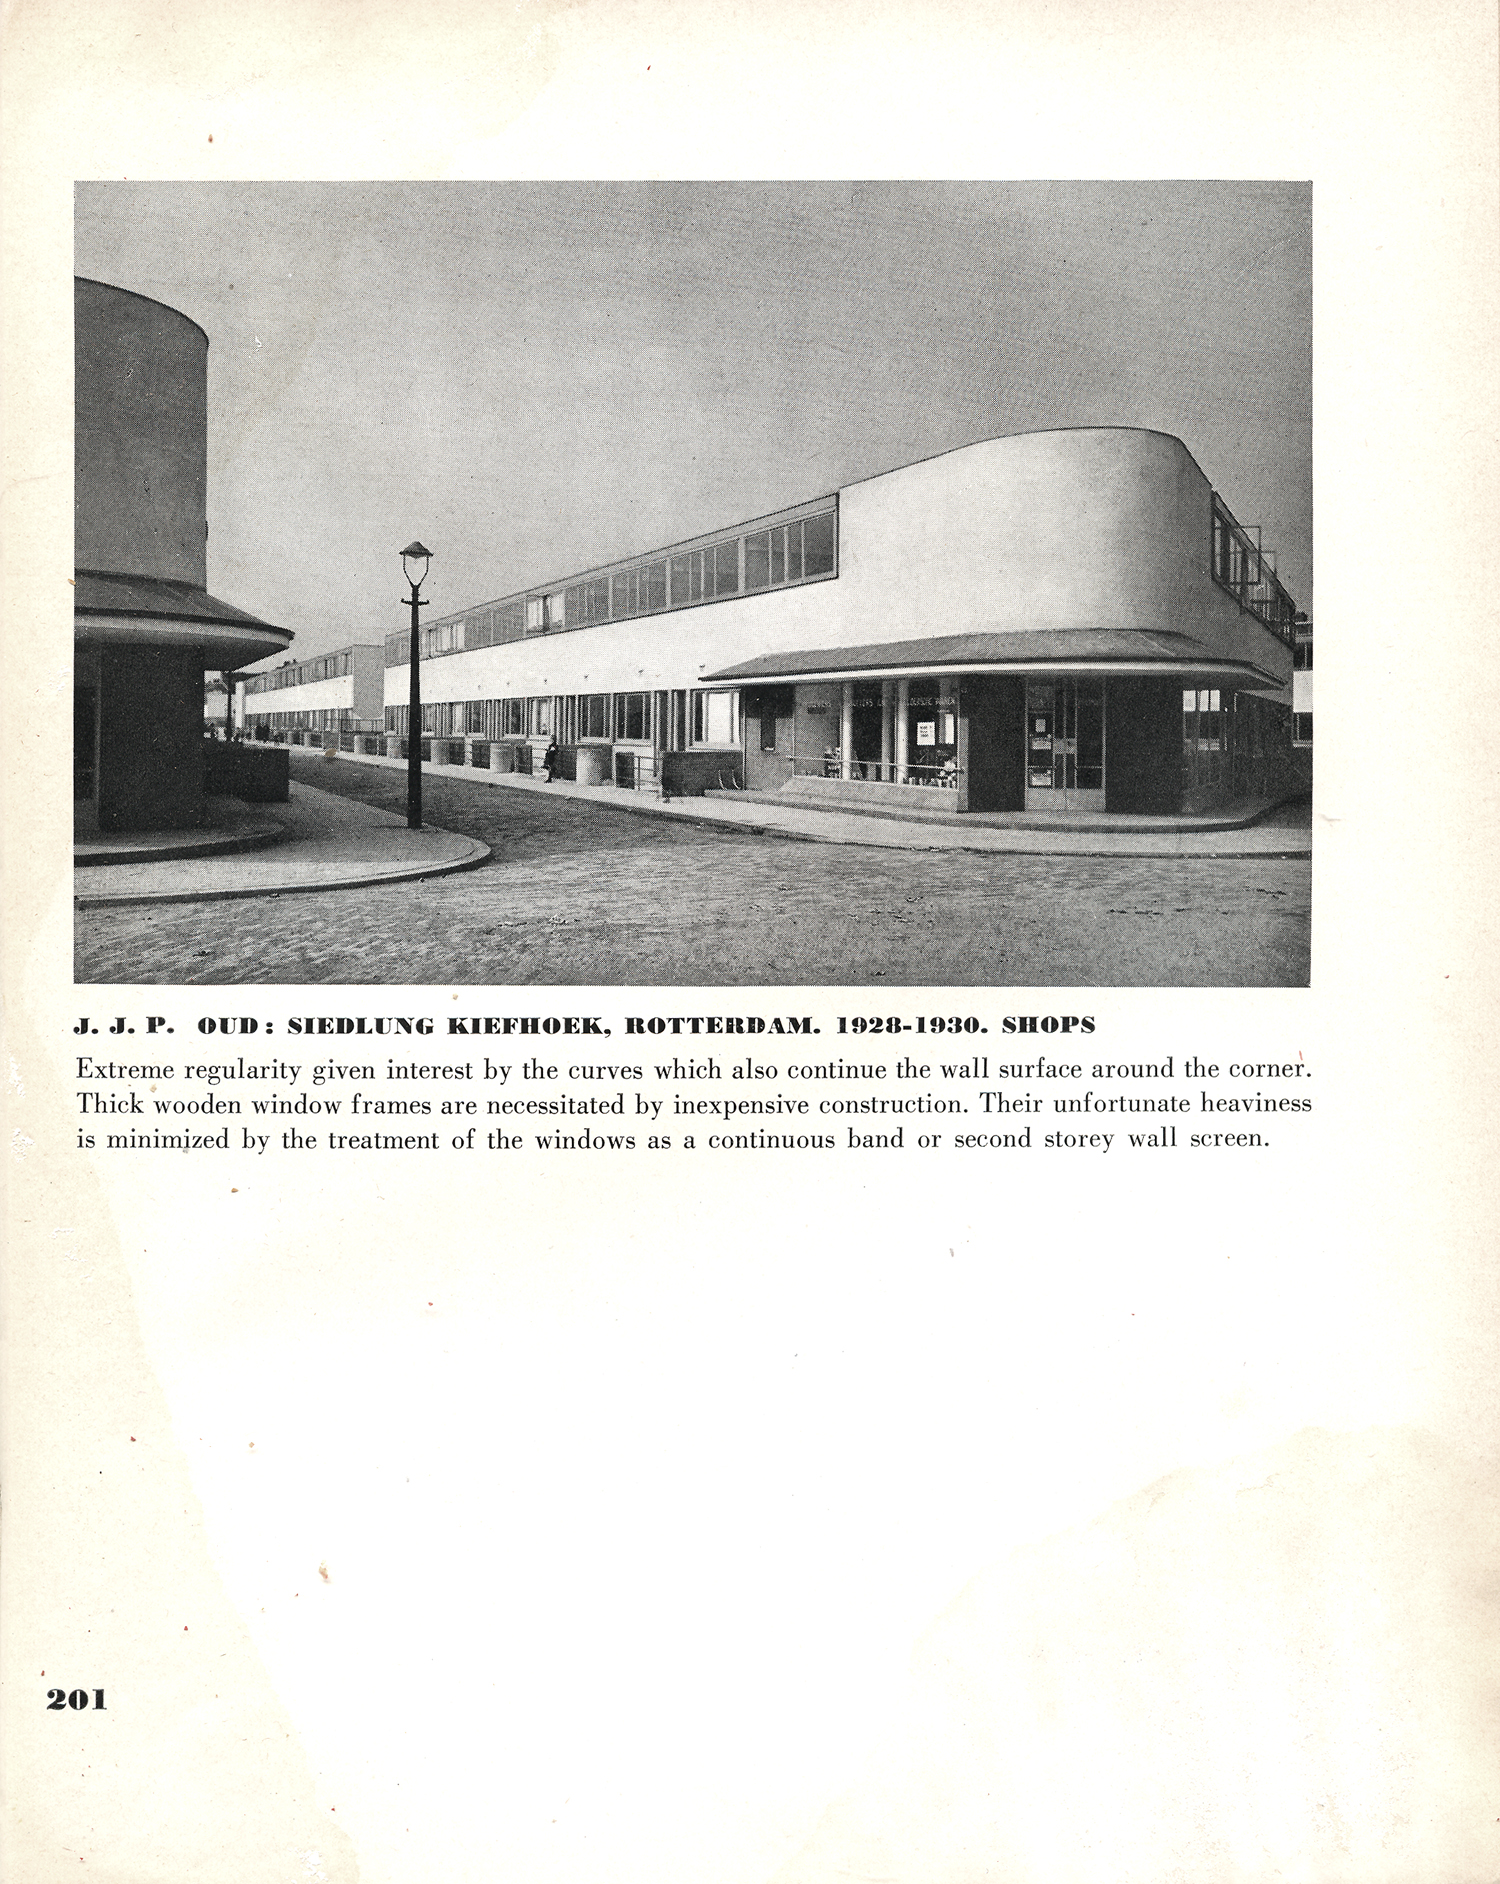 Illustration, from Henry-Russell Hitchcock, Jr., and Philip Johnson, The International Style: Architecture Since 1922 (New York: W. W. Norton & Company, 1932). Source: http://acsa100.org/bookcontent.html